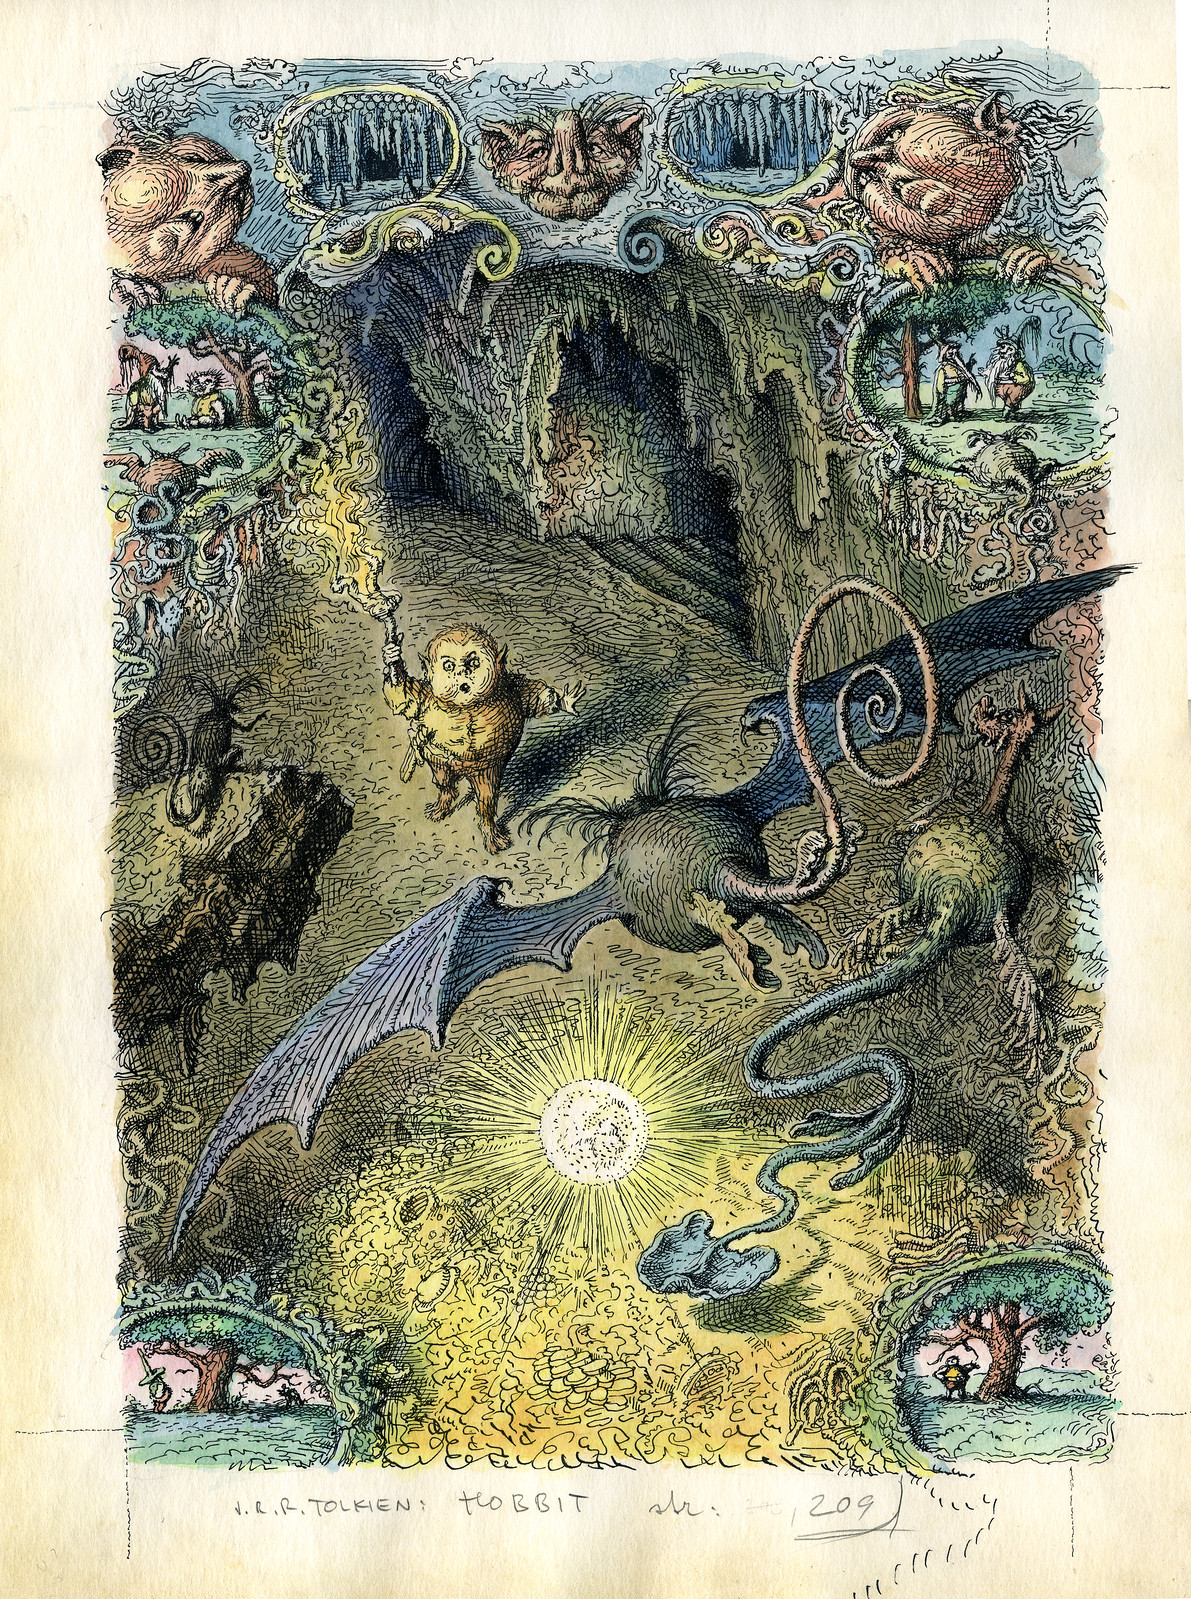 Peter Klucik -The Hobbit, Illustration 06